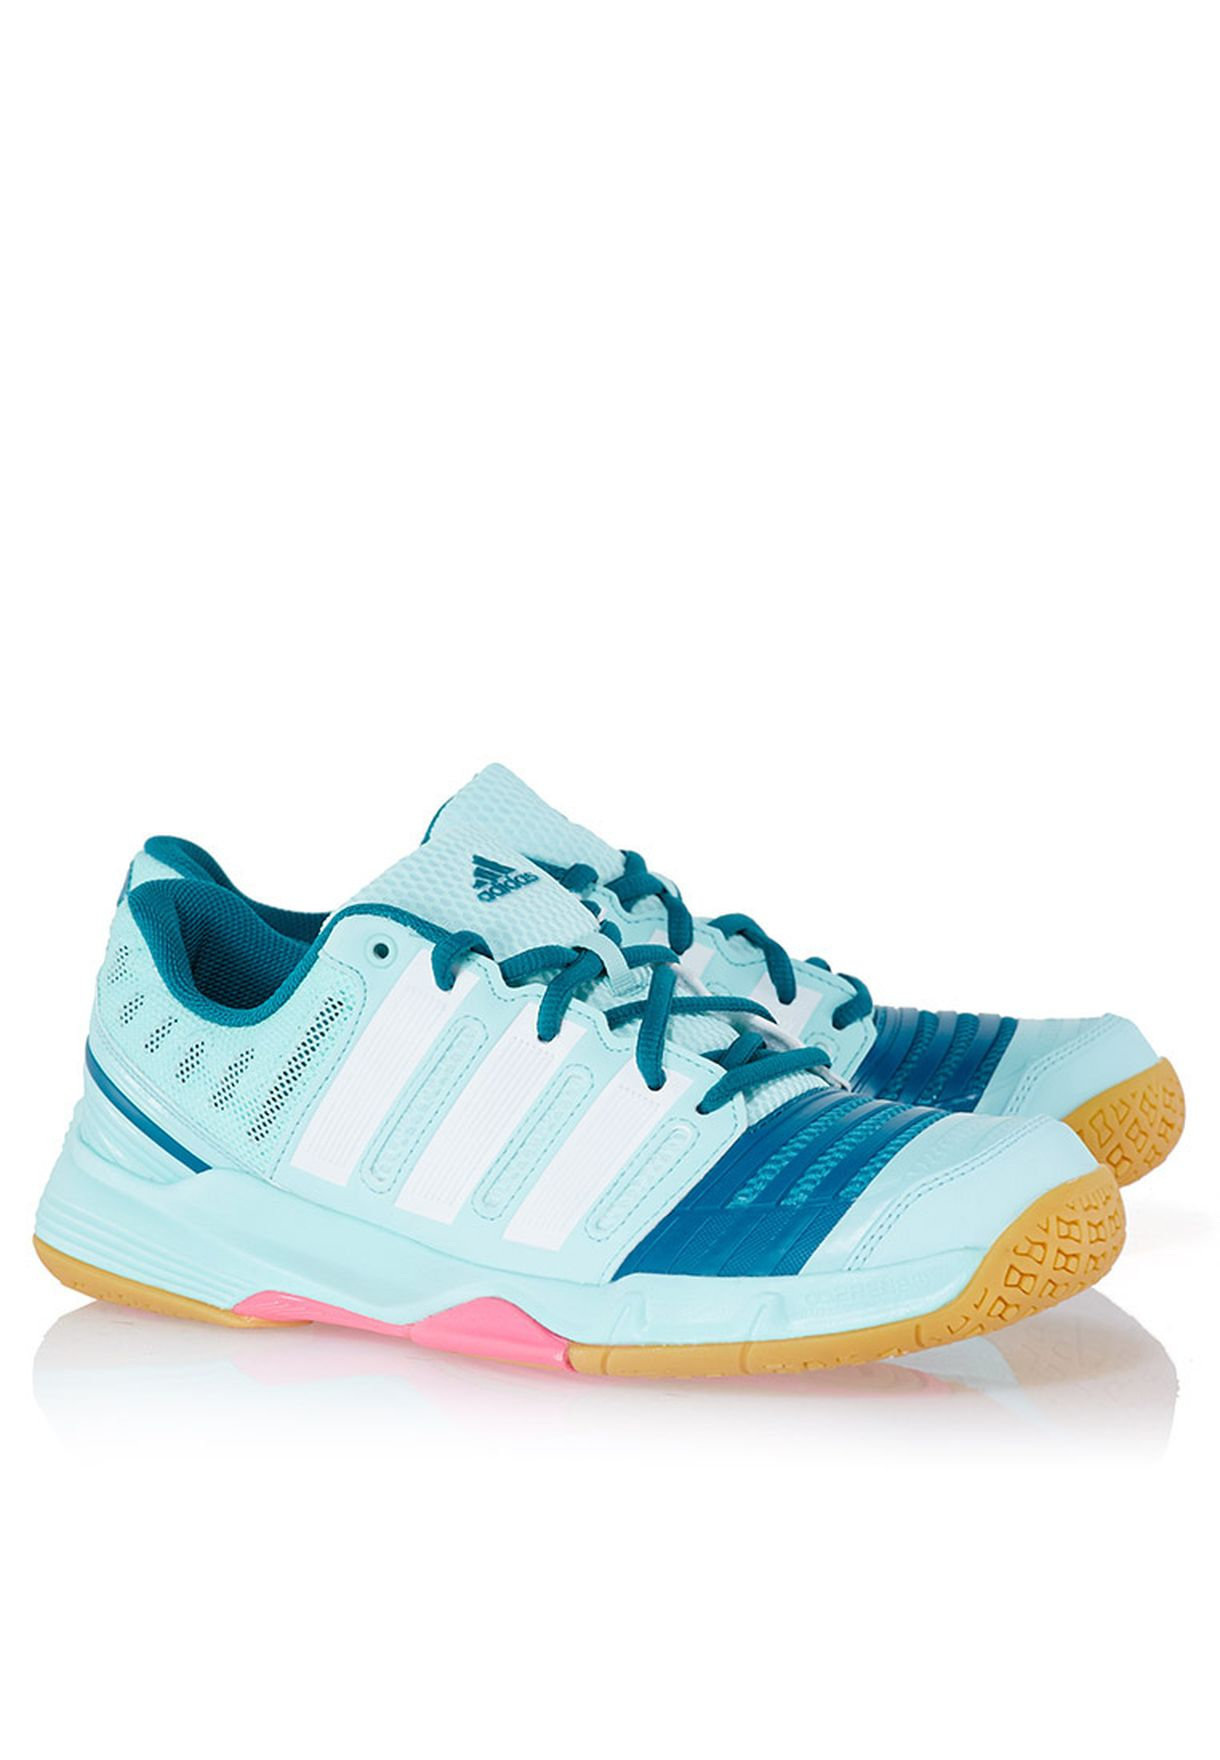 c78afddf36f5 Shop adidas green Court Stabil 11 W Sneakers M17490 for Women in ...